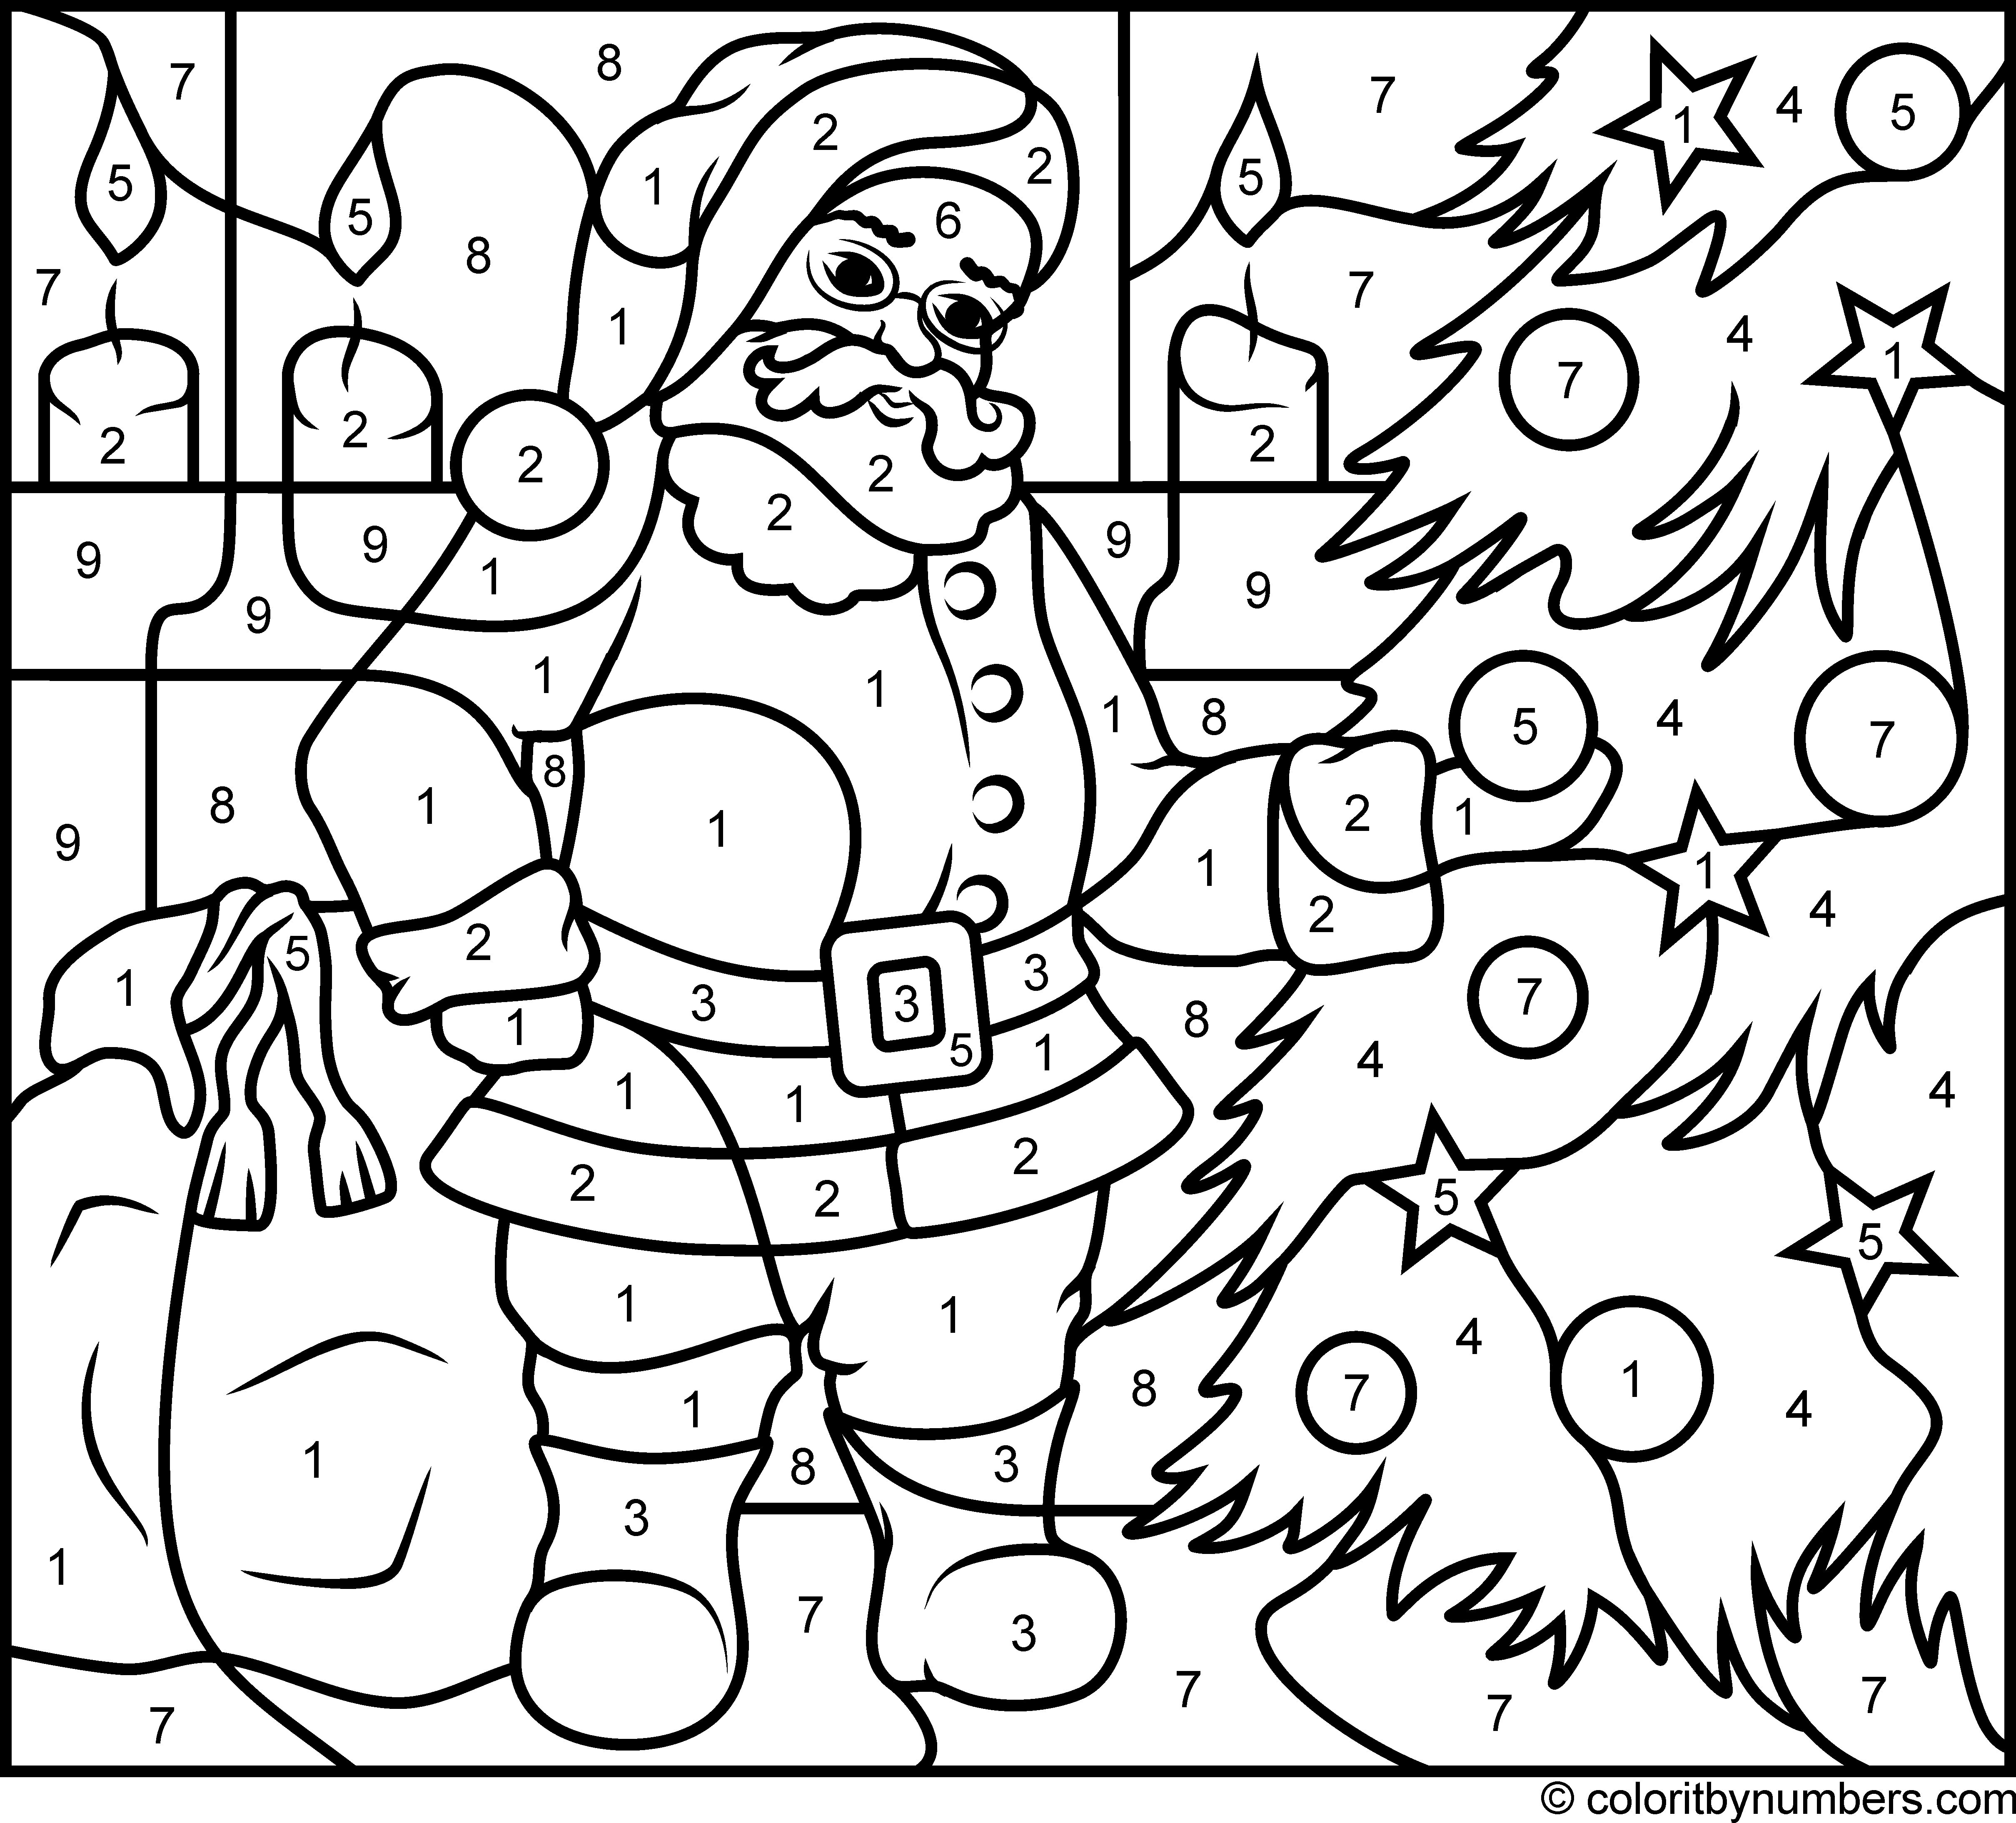 Santa Claus - Hard | Christmas present coloring pages ...